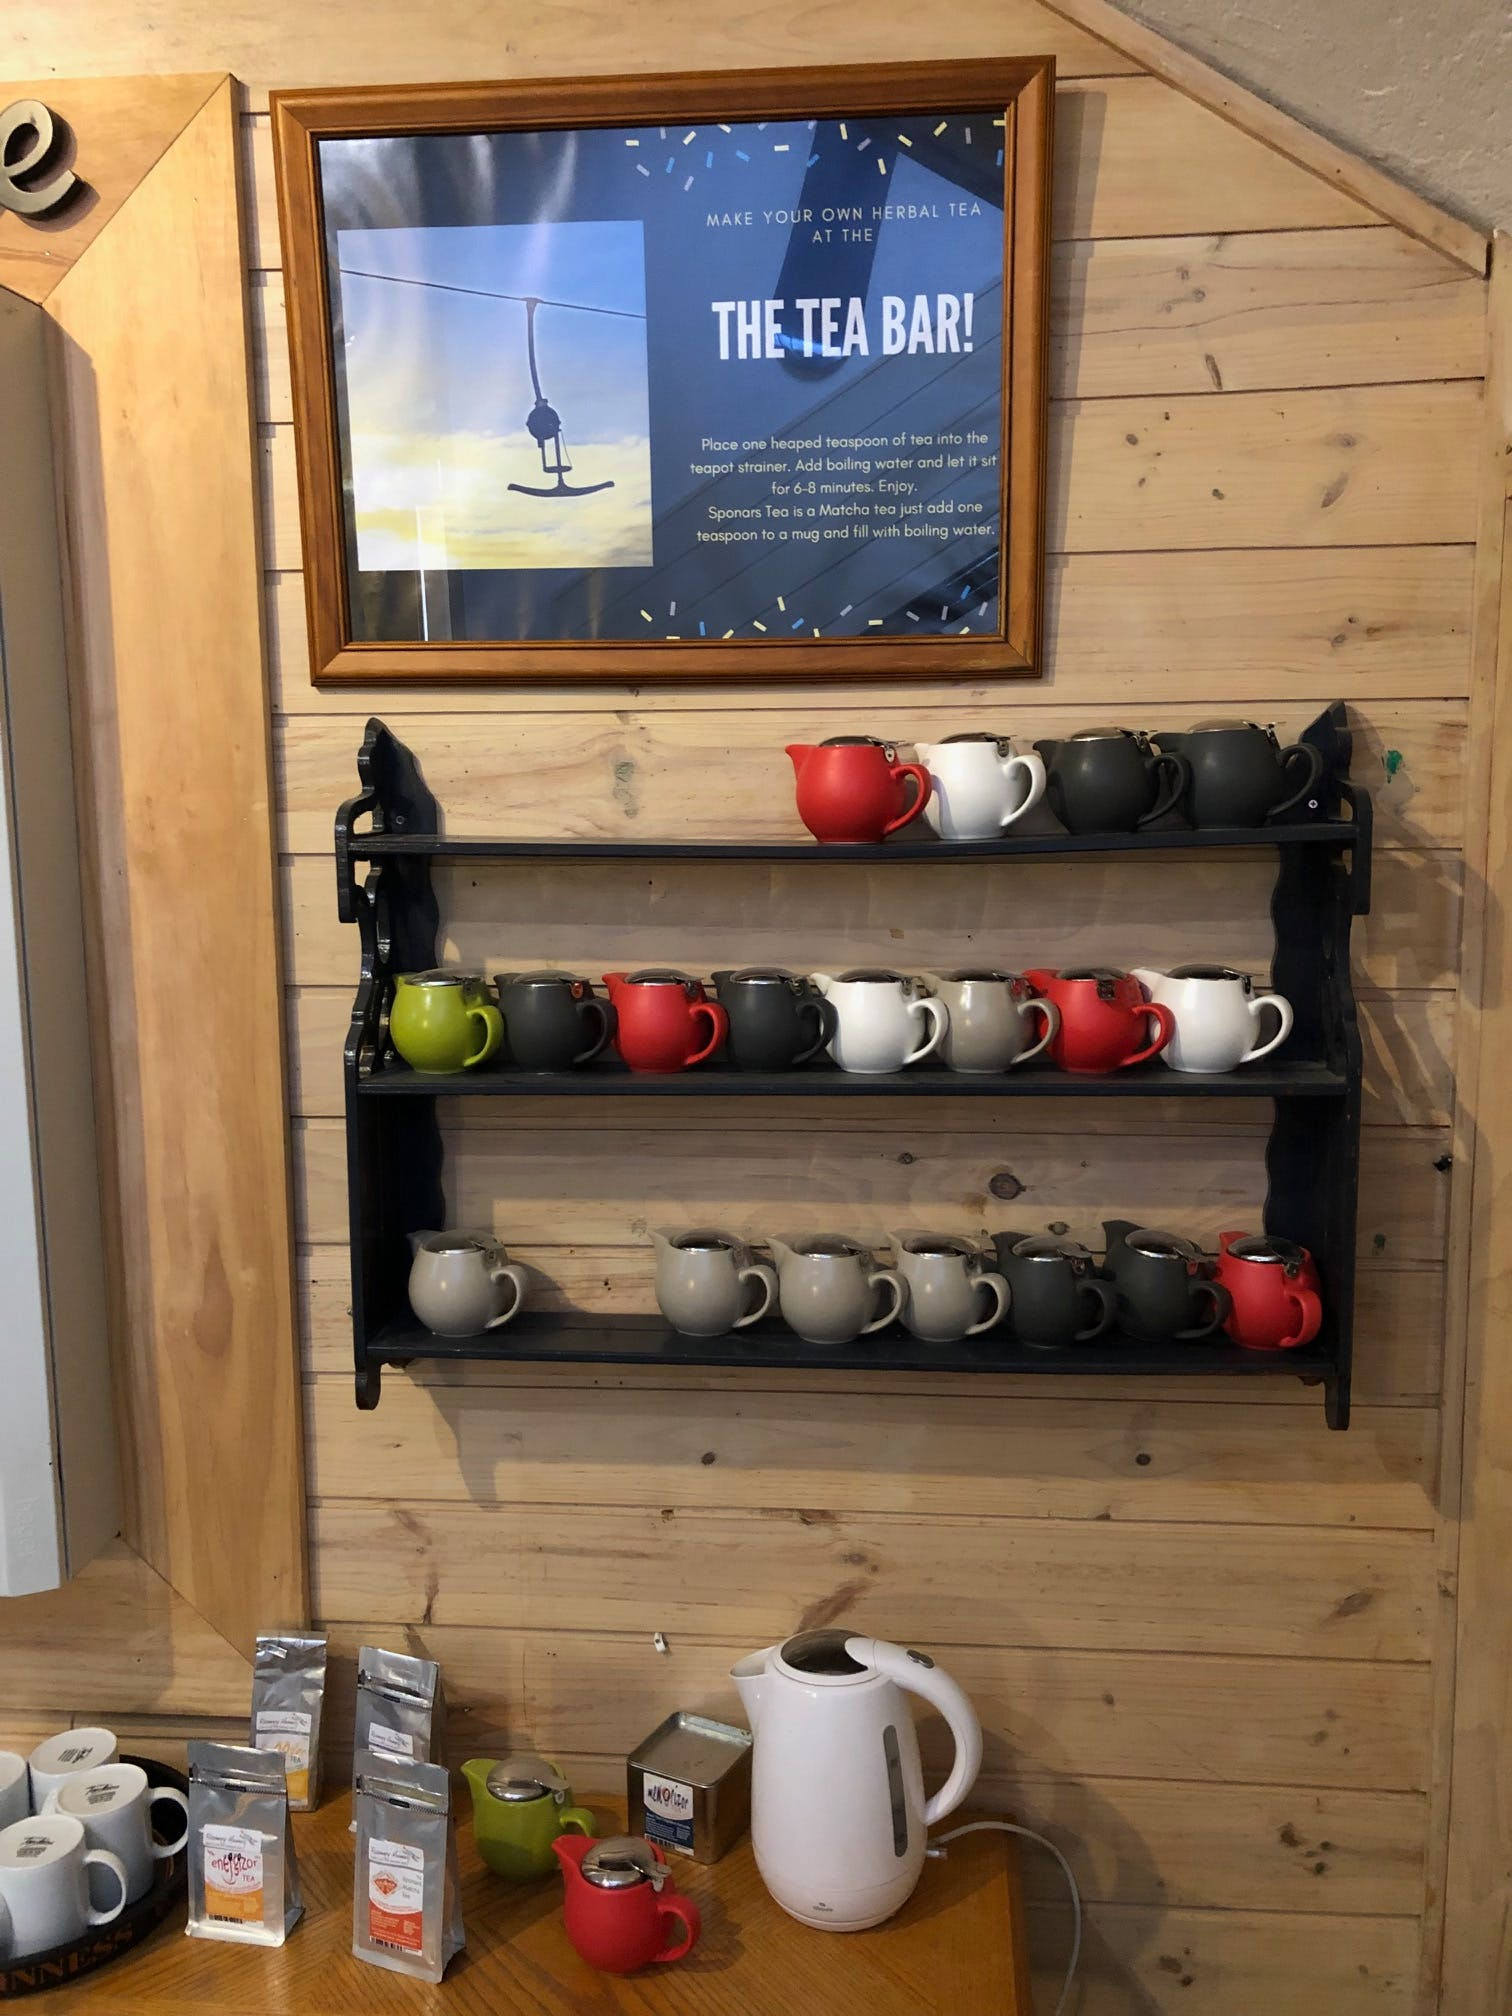 The Tea Bar is FREE for the guests at Sponars. Try some therapeutic tea to boost your health during your stay.